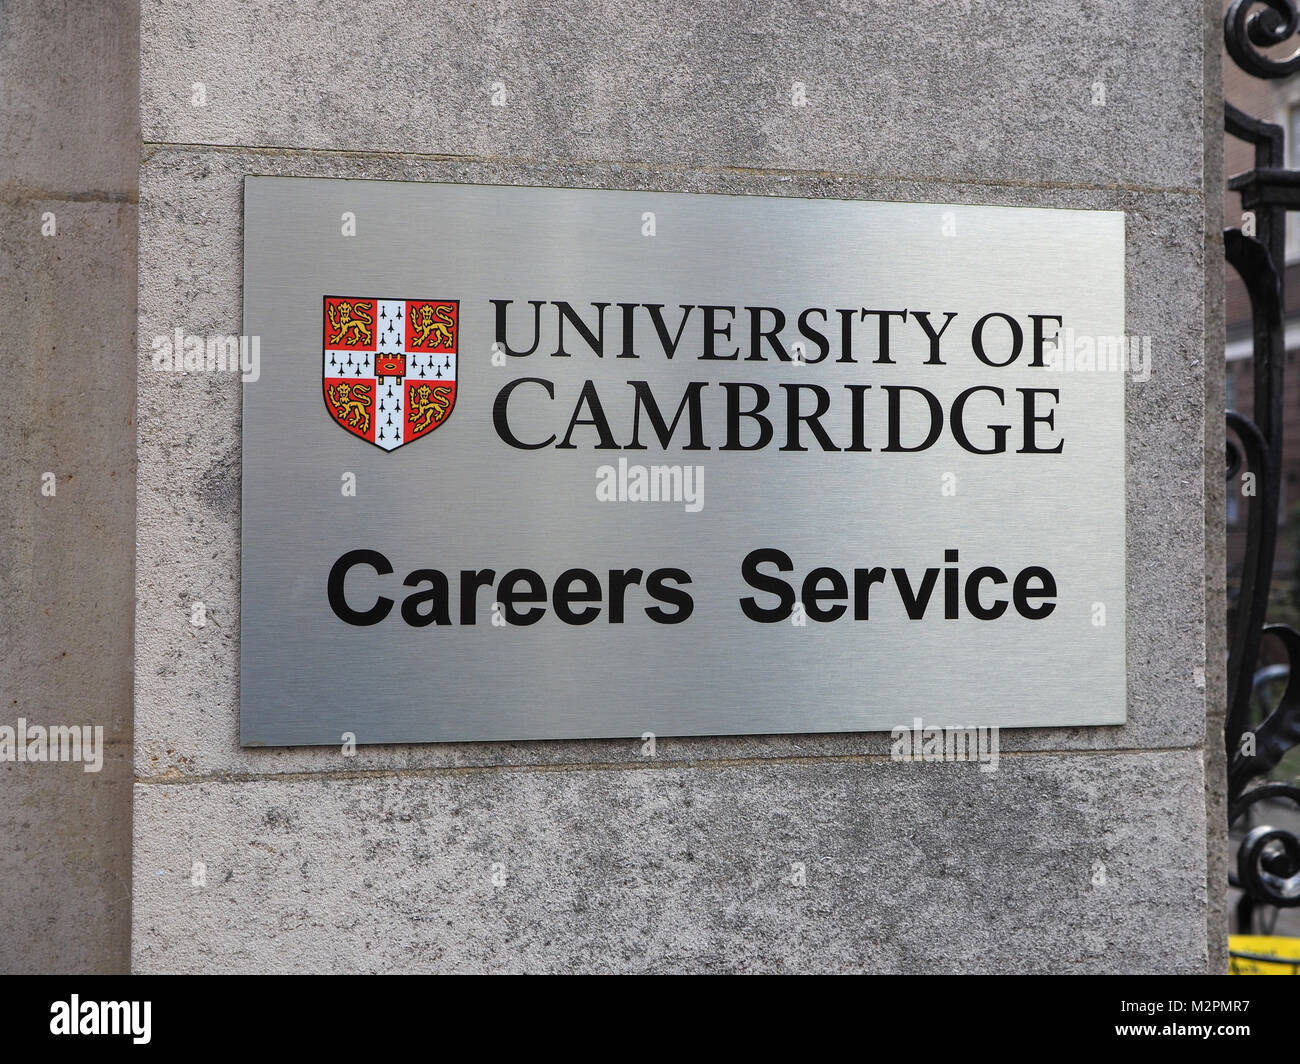 University of Cambridge Careers Service sign - Stock Image